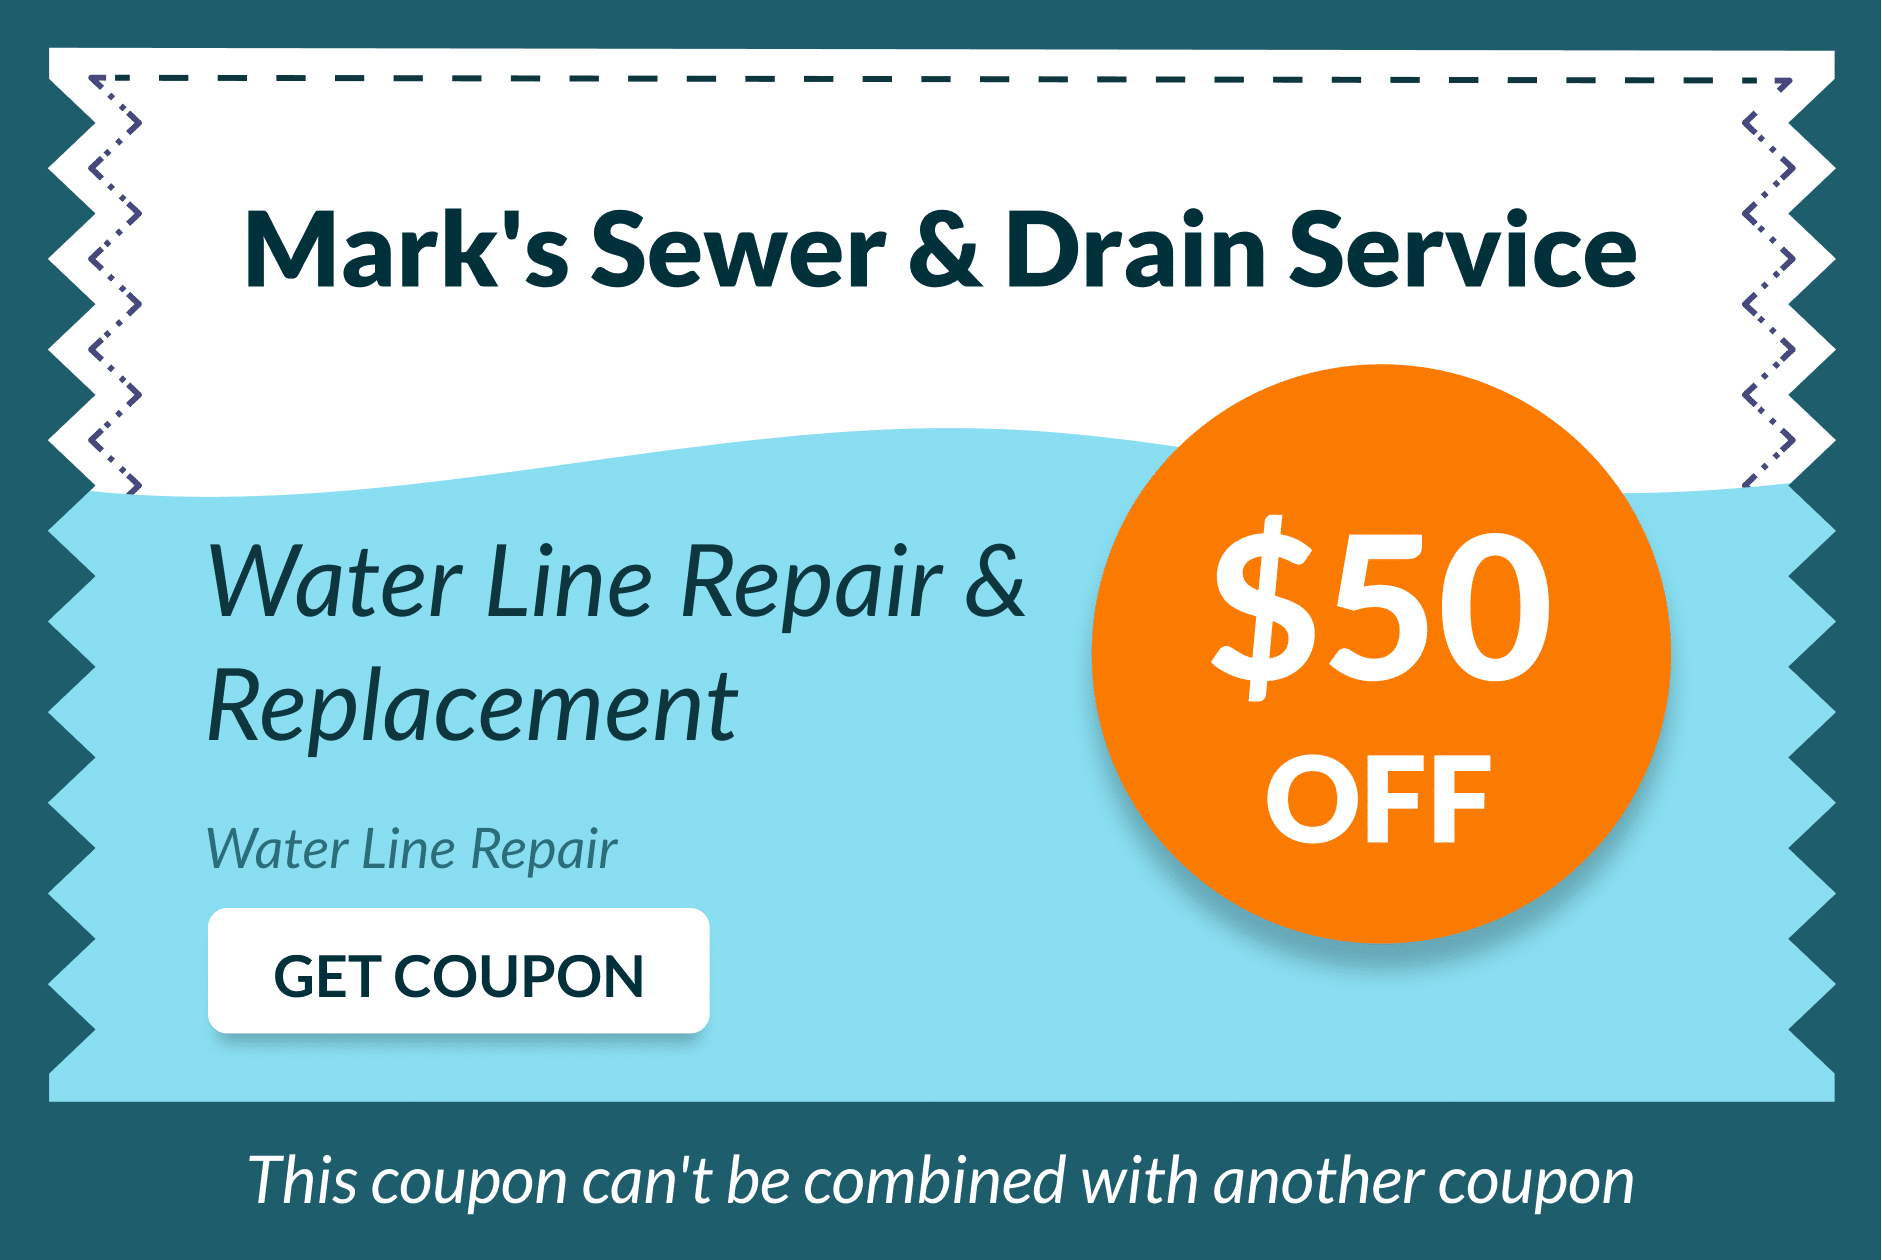 Mark's Sewer and Drain Service Coupon 7